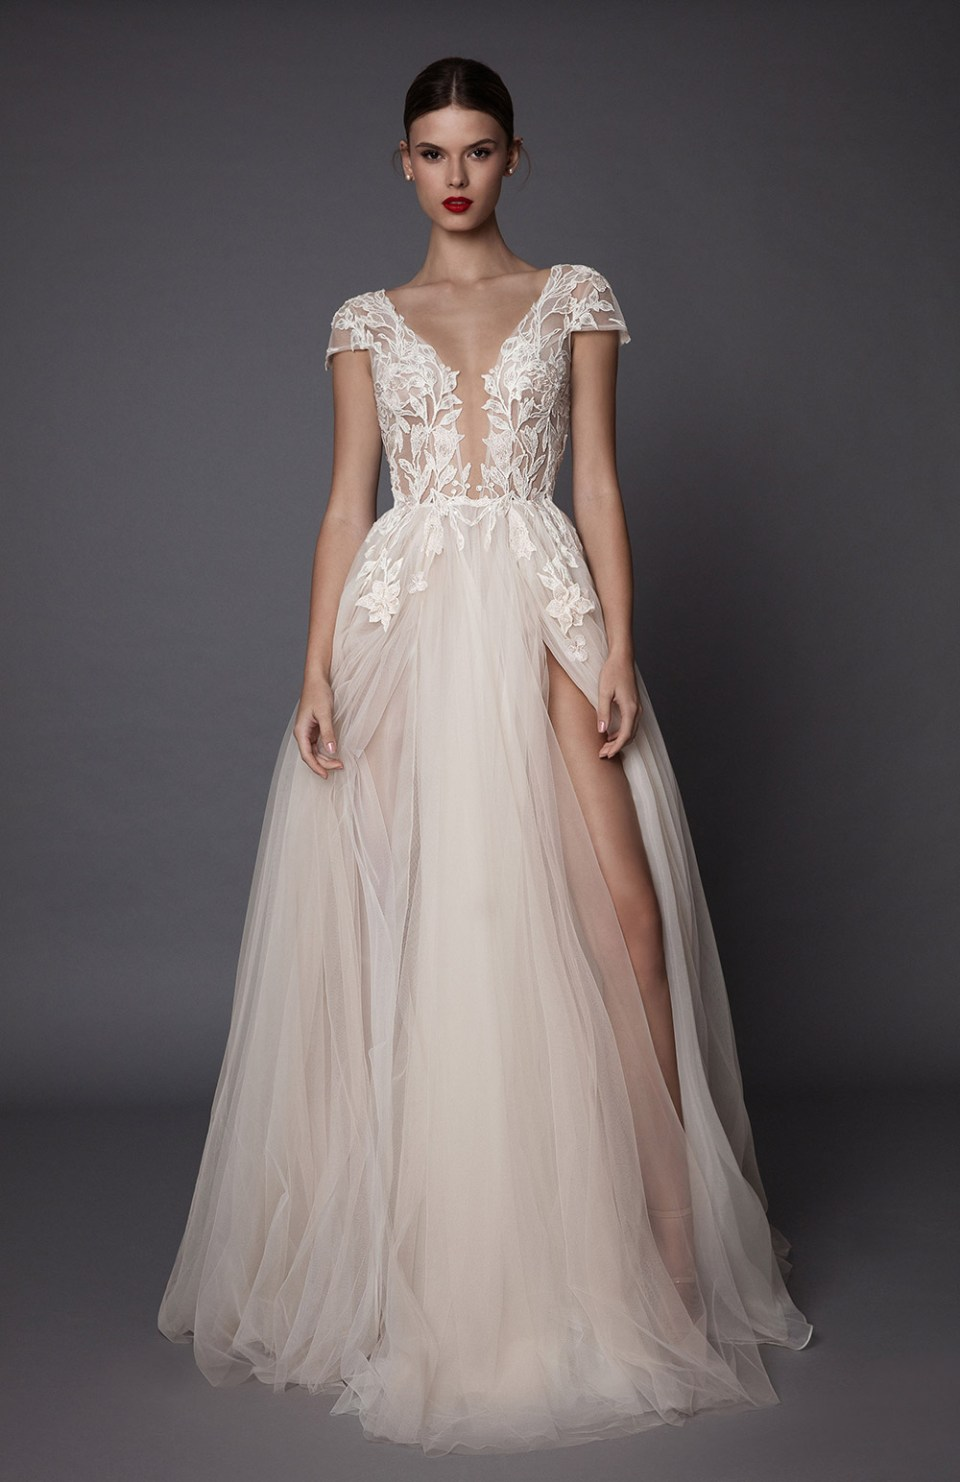 Antonia - Muse by Berta Fall 2017 Collection. www.theweddingnotebook.com